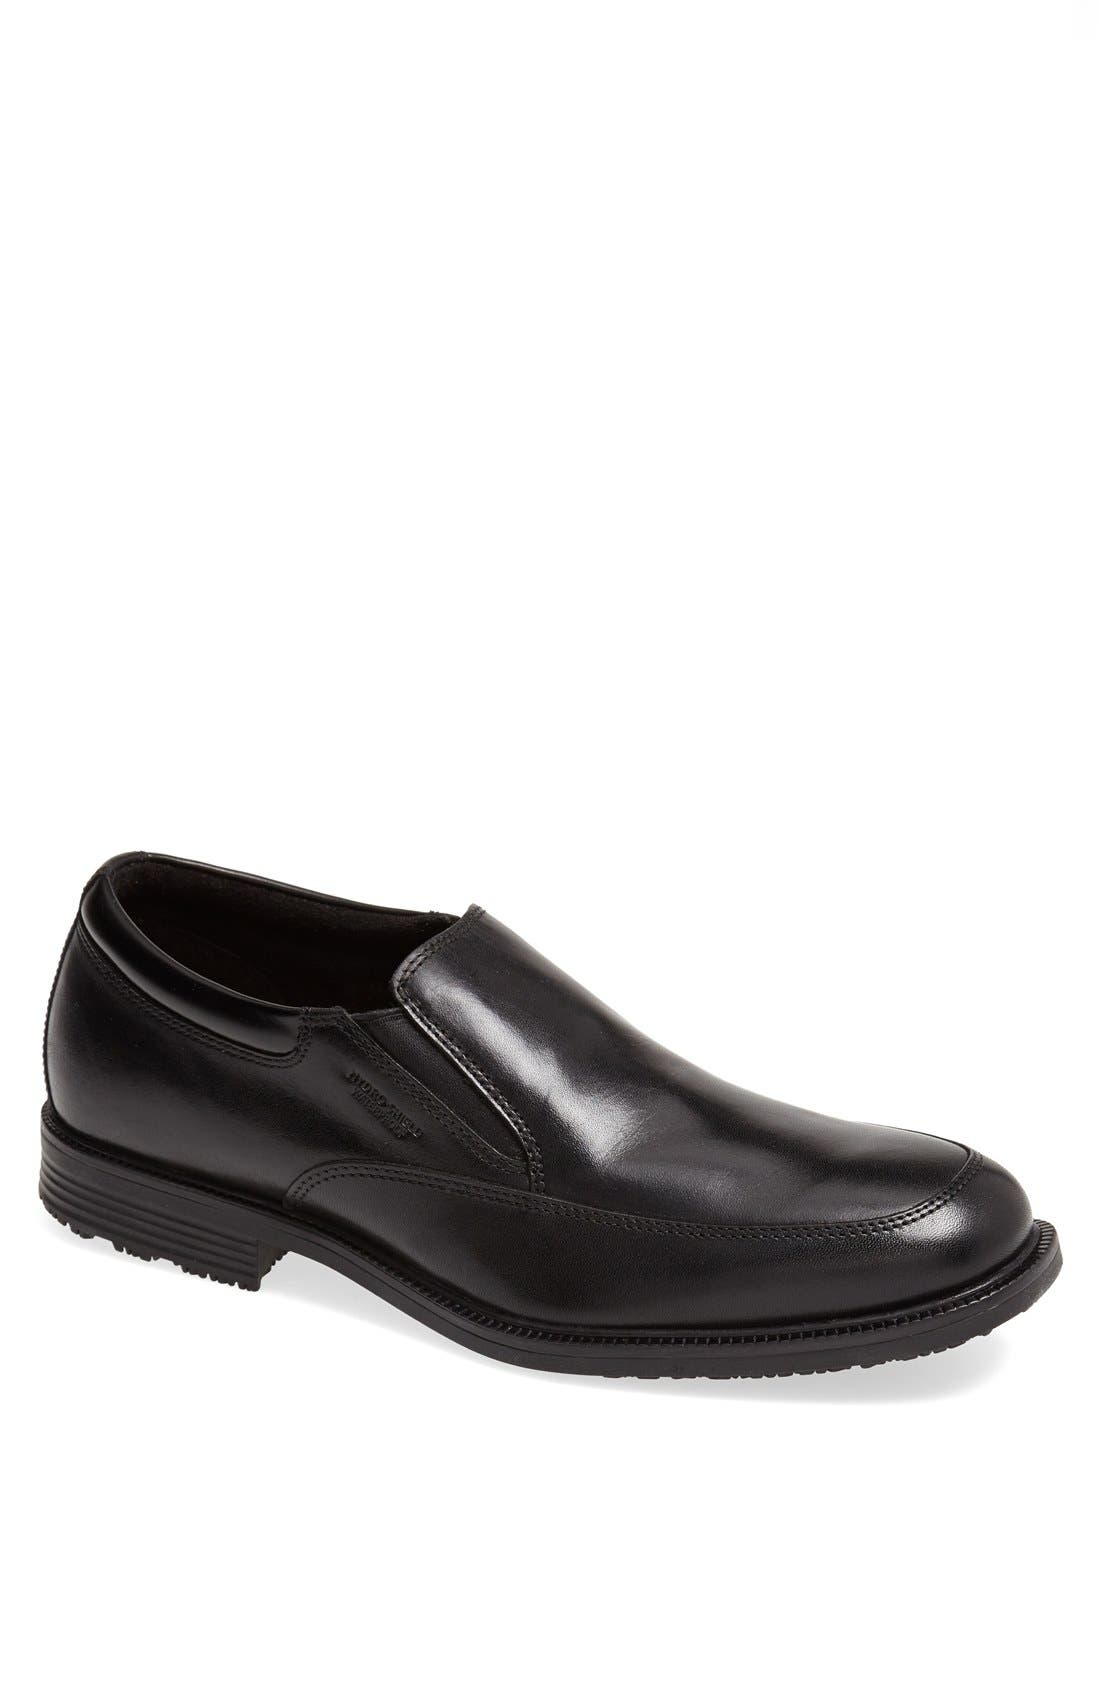 'Essential Details' Waterproof Loafer,                             Main thumbnail 1, color,                             001